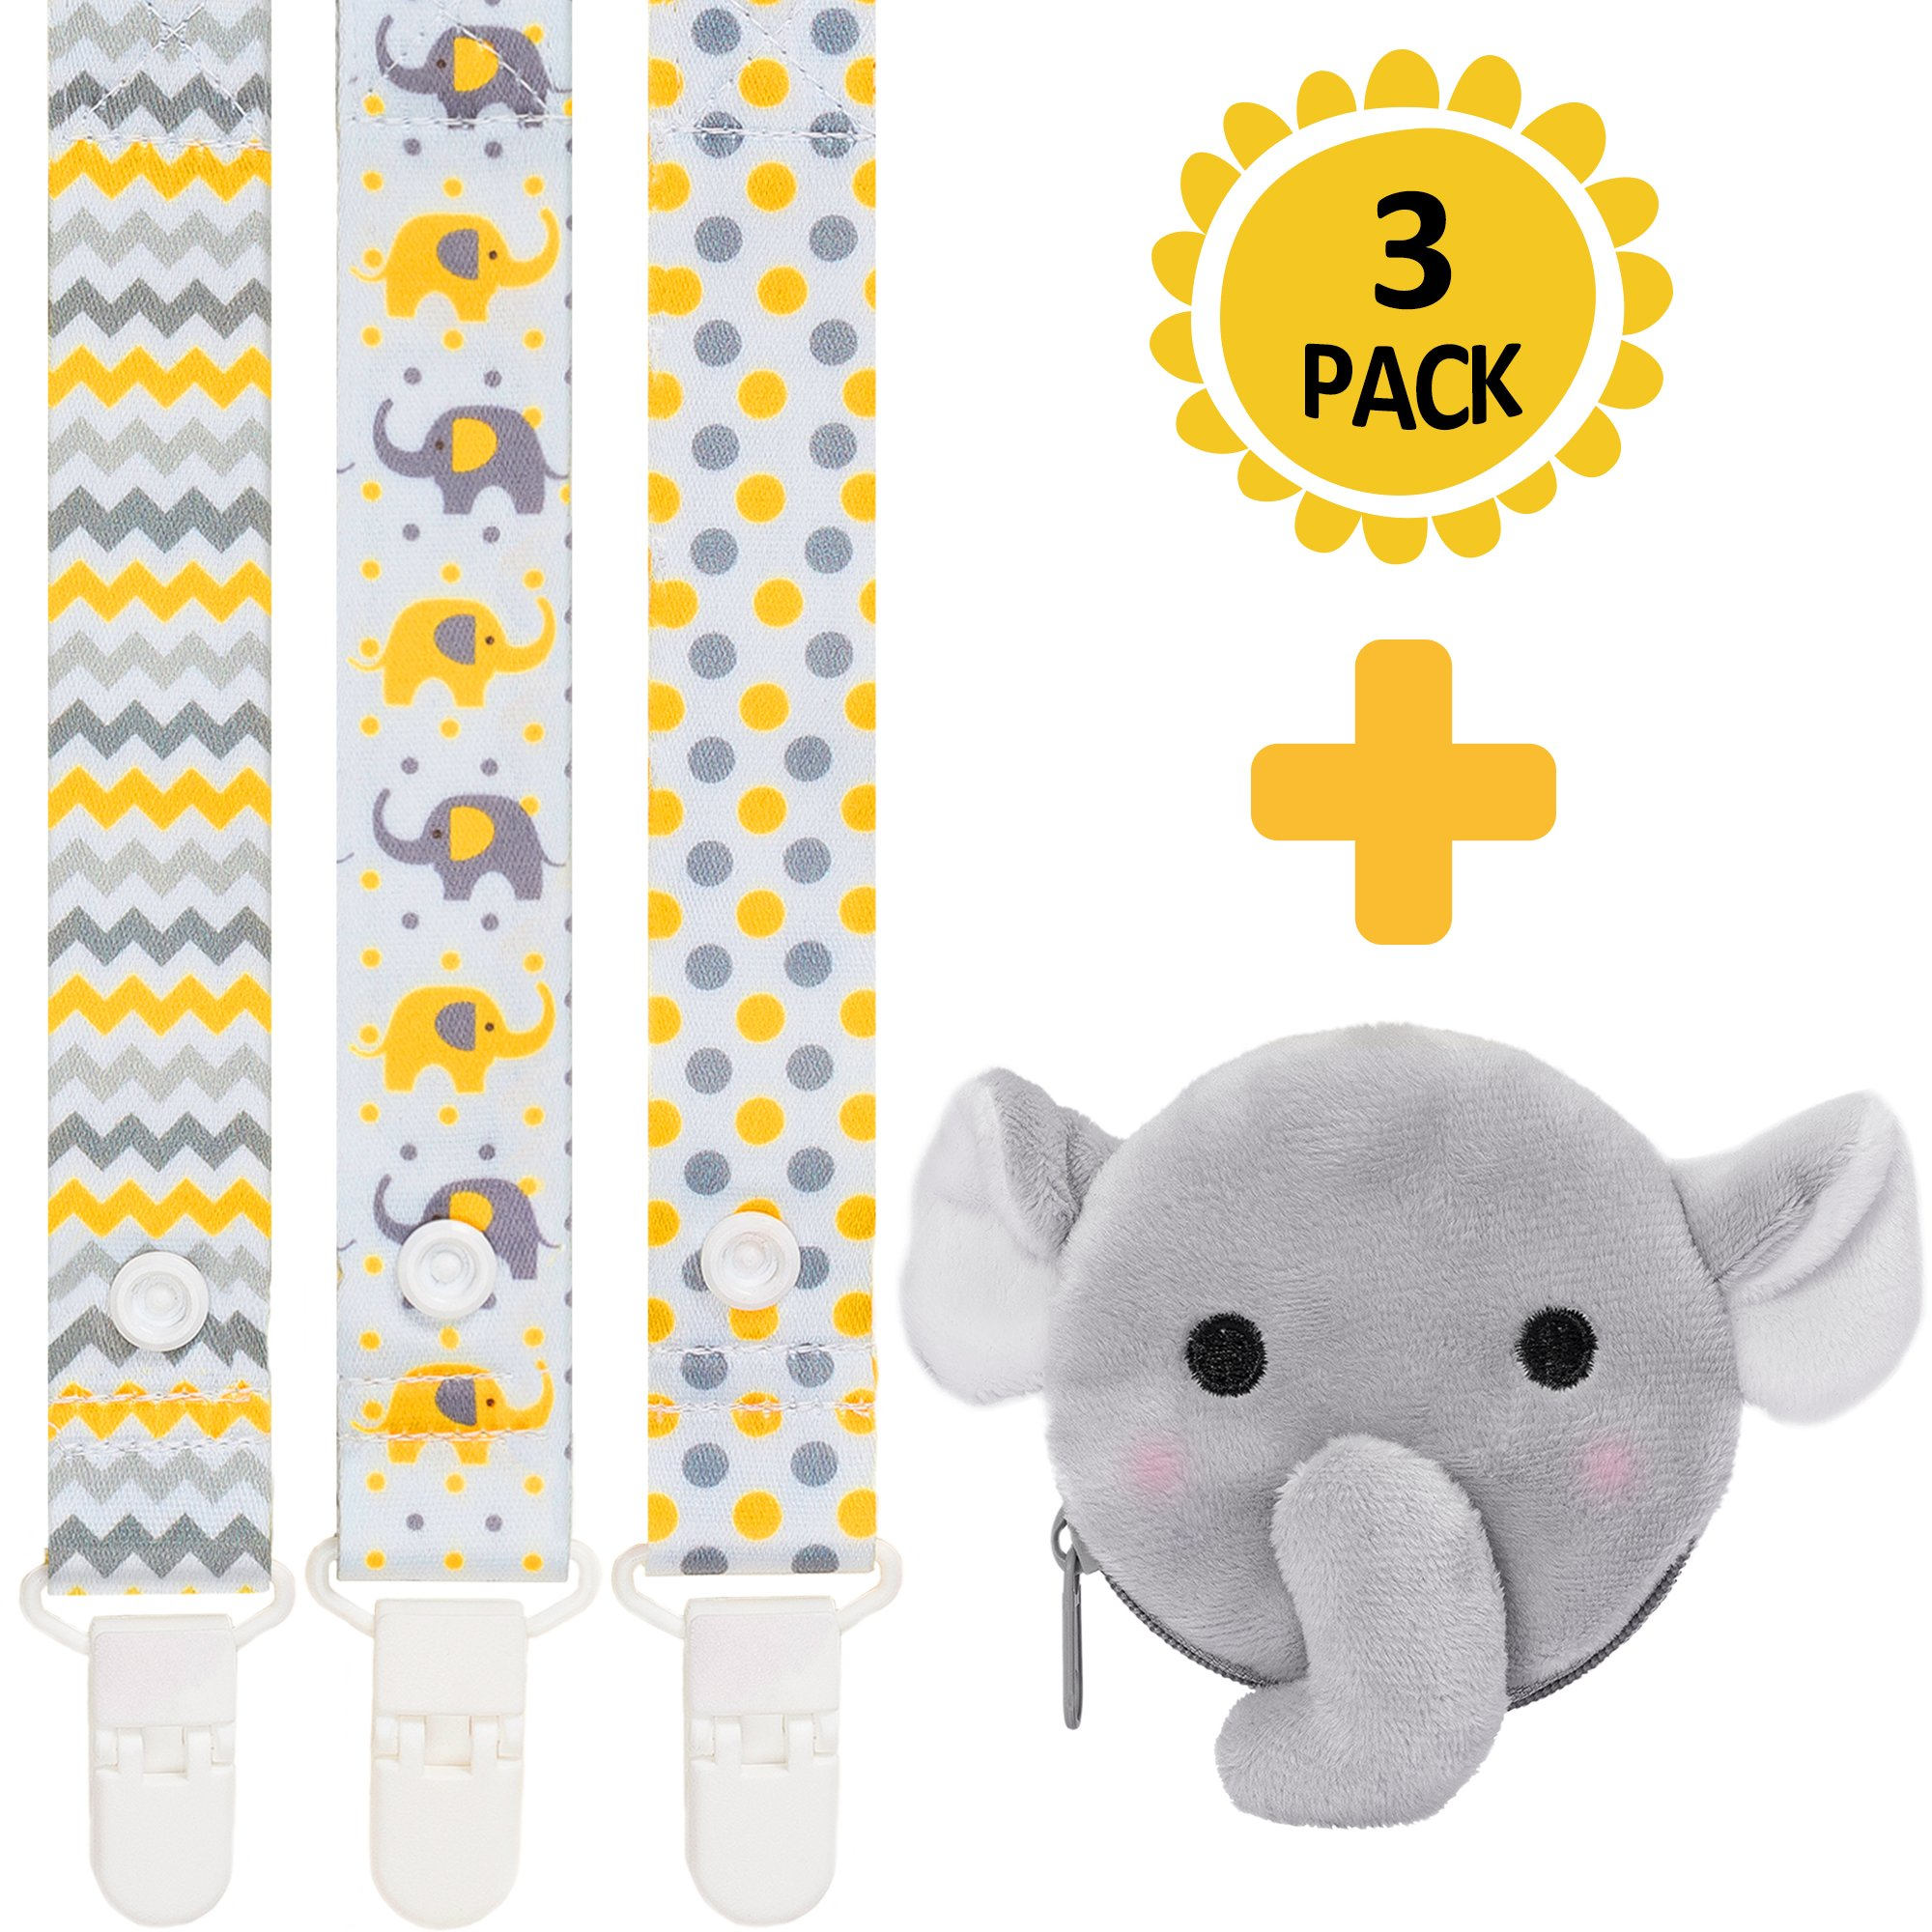 4-in-1 Pacifier Clips+Antibacterial Pacifier Holder by Moskka-Set of 3 Universal Pacifier Clips&Paciafier Pocket/Case Infant Teething Ring&Toys Holder for Baby Boy And Girl-Baby Shower Gift-Elephant